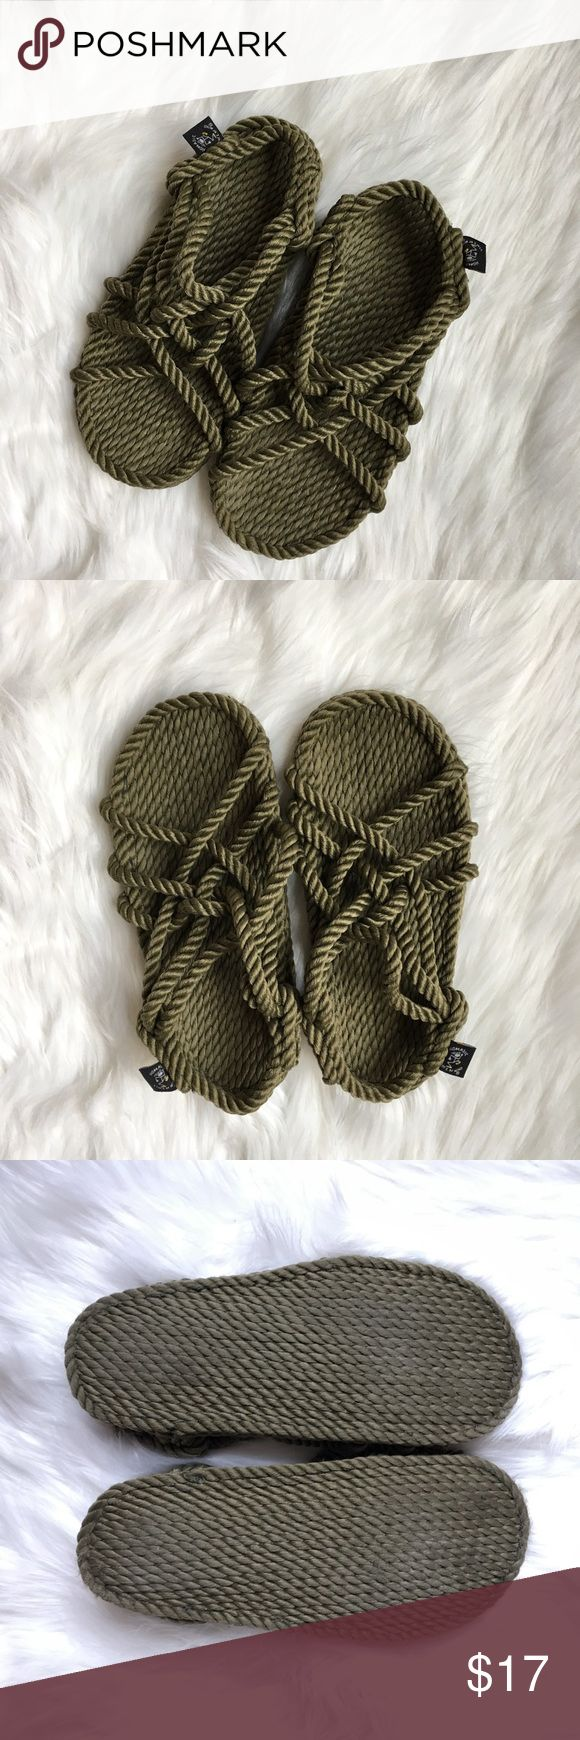 Nomadic State of Mind Air Jesus Roe Shoes Handmade and super lightweight. Great Condition. Urban Outfitters Shoes Sandals